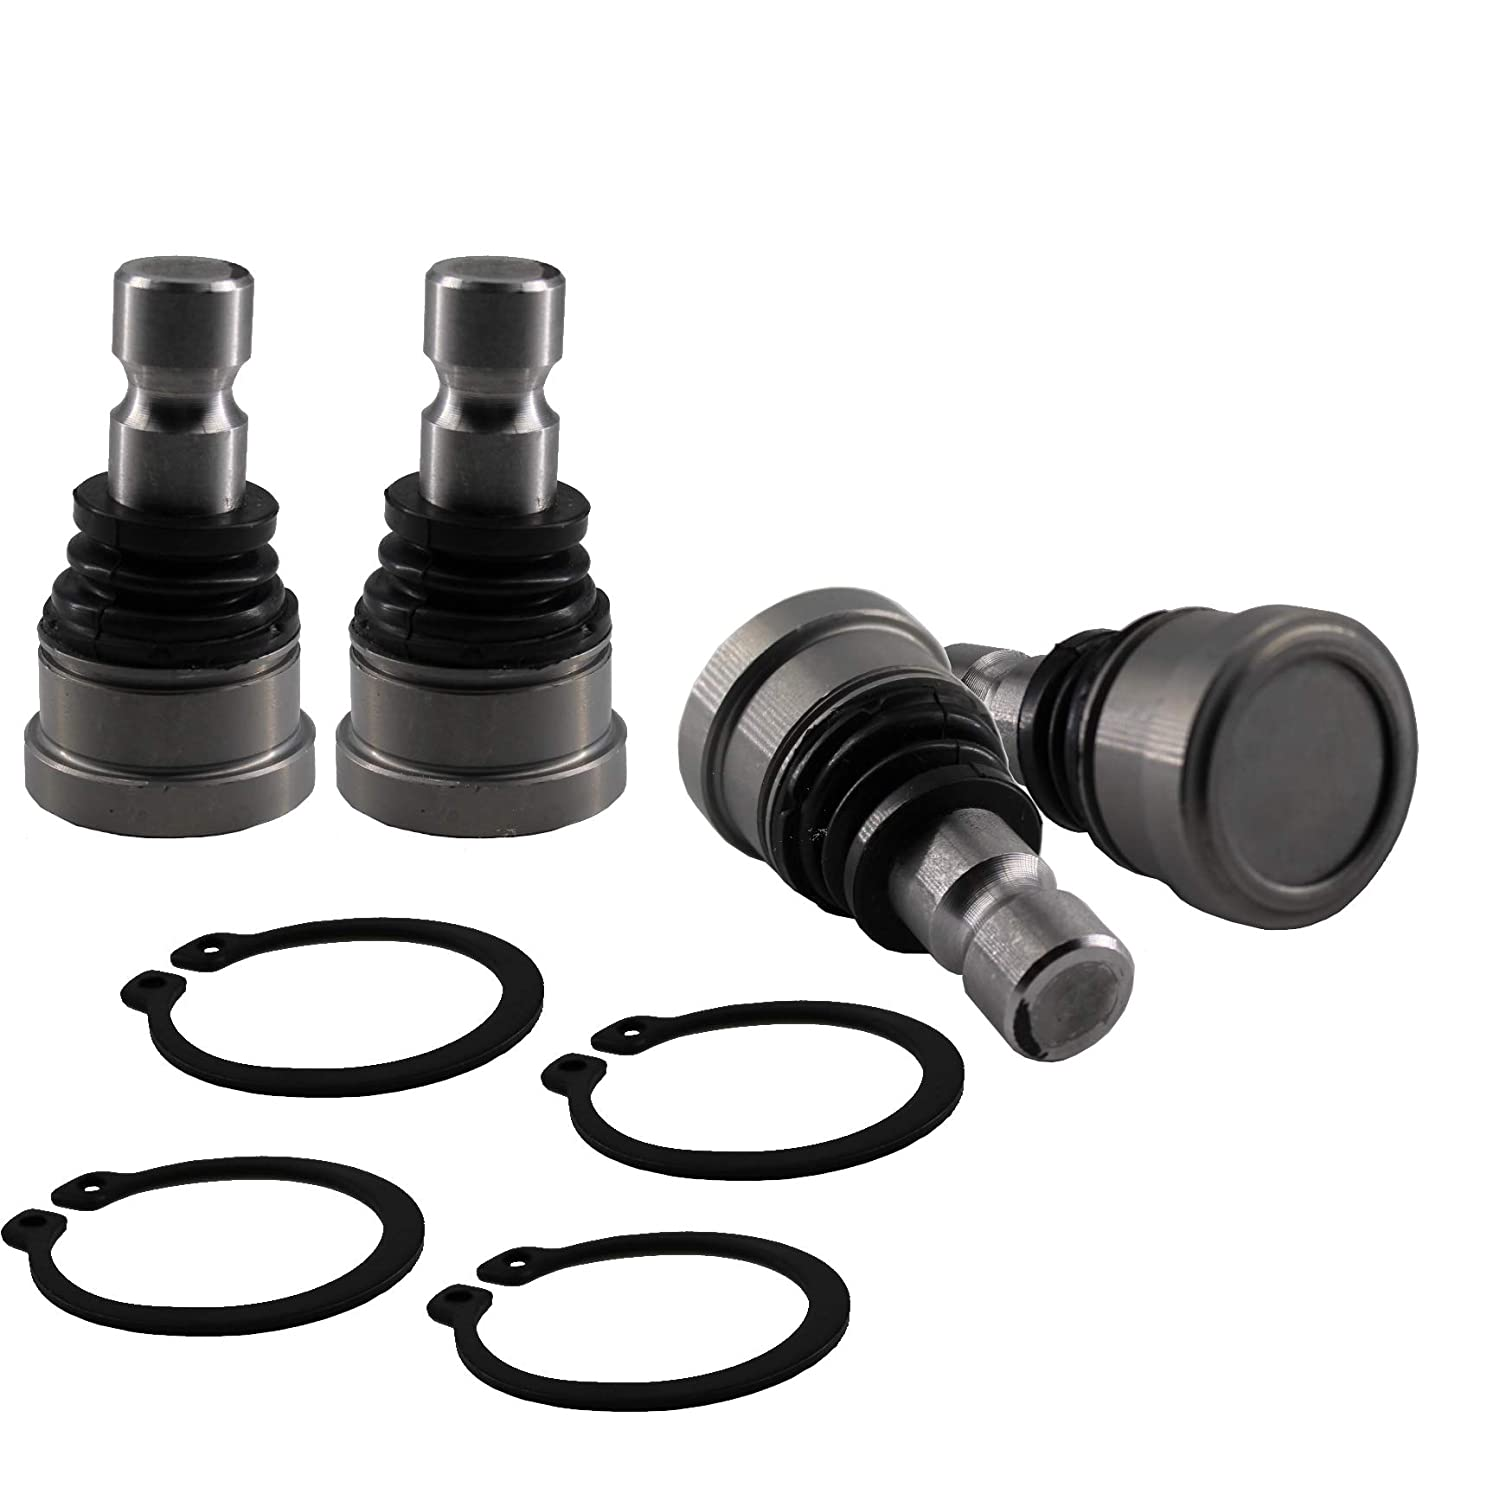 East Lake Axle upper//lower Ball Joint kit compatible with Polaris Ranger RZR Sportsman ATV//UTV 7061220 7061187